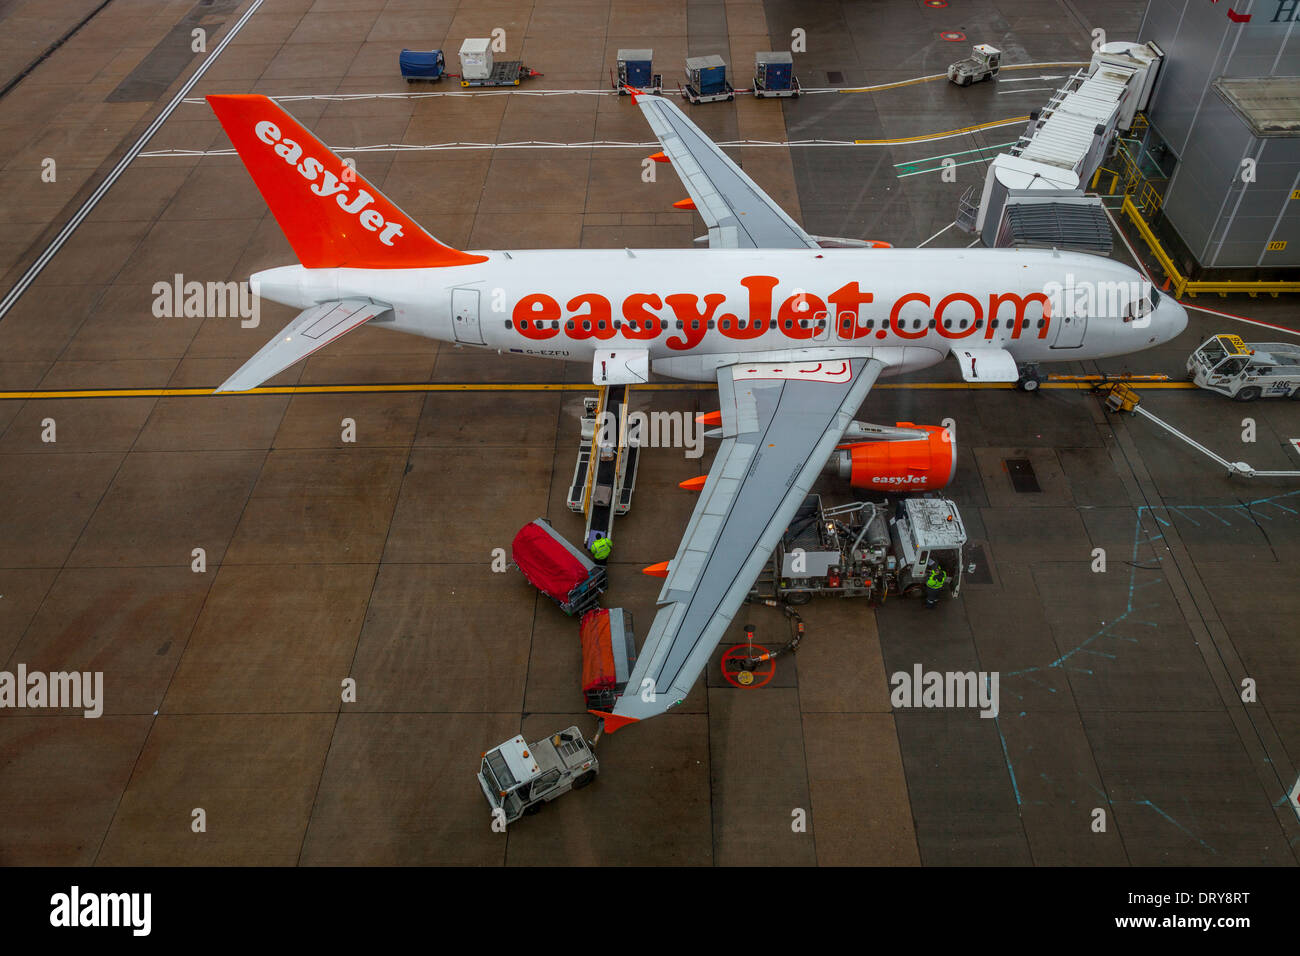 An Easy Jet Airplane At The Gate, North Terminal, Gatwick Airport, Great Britain - Stock Image